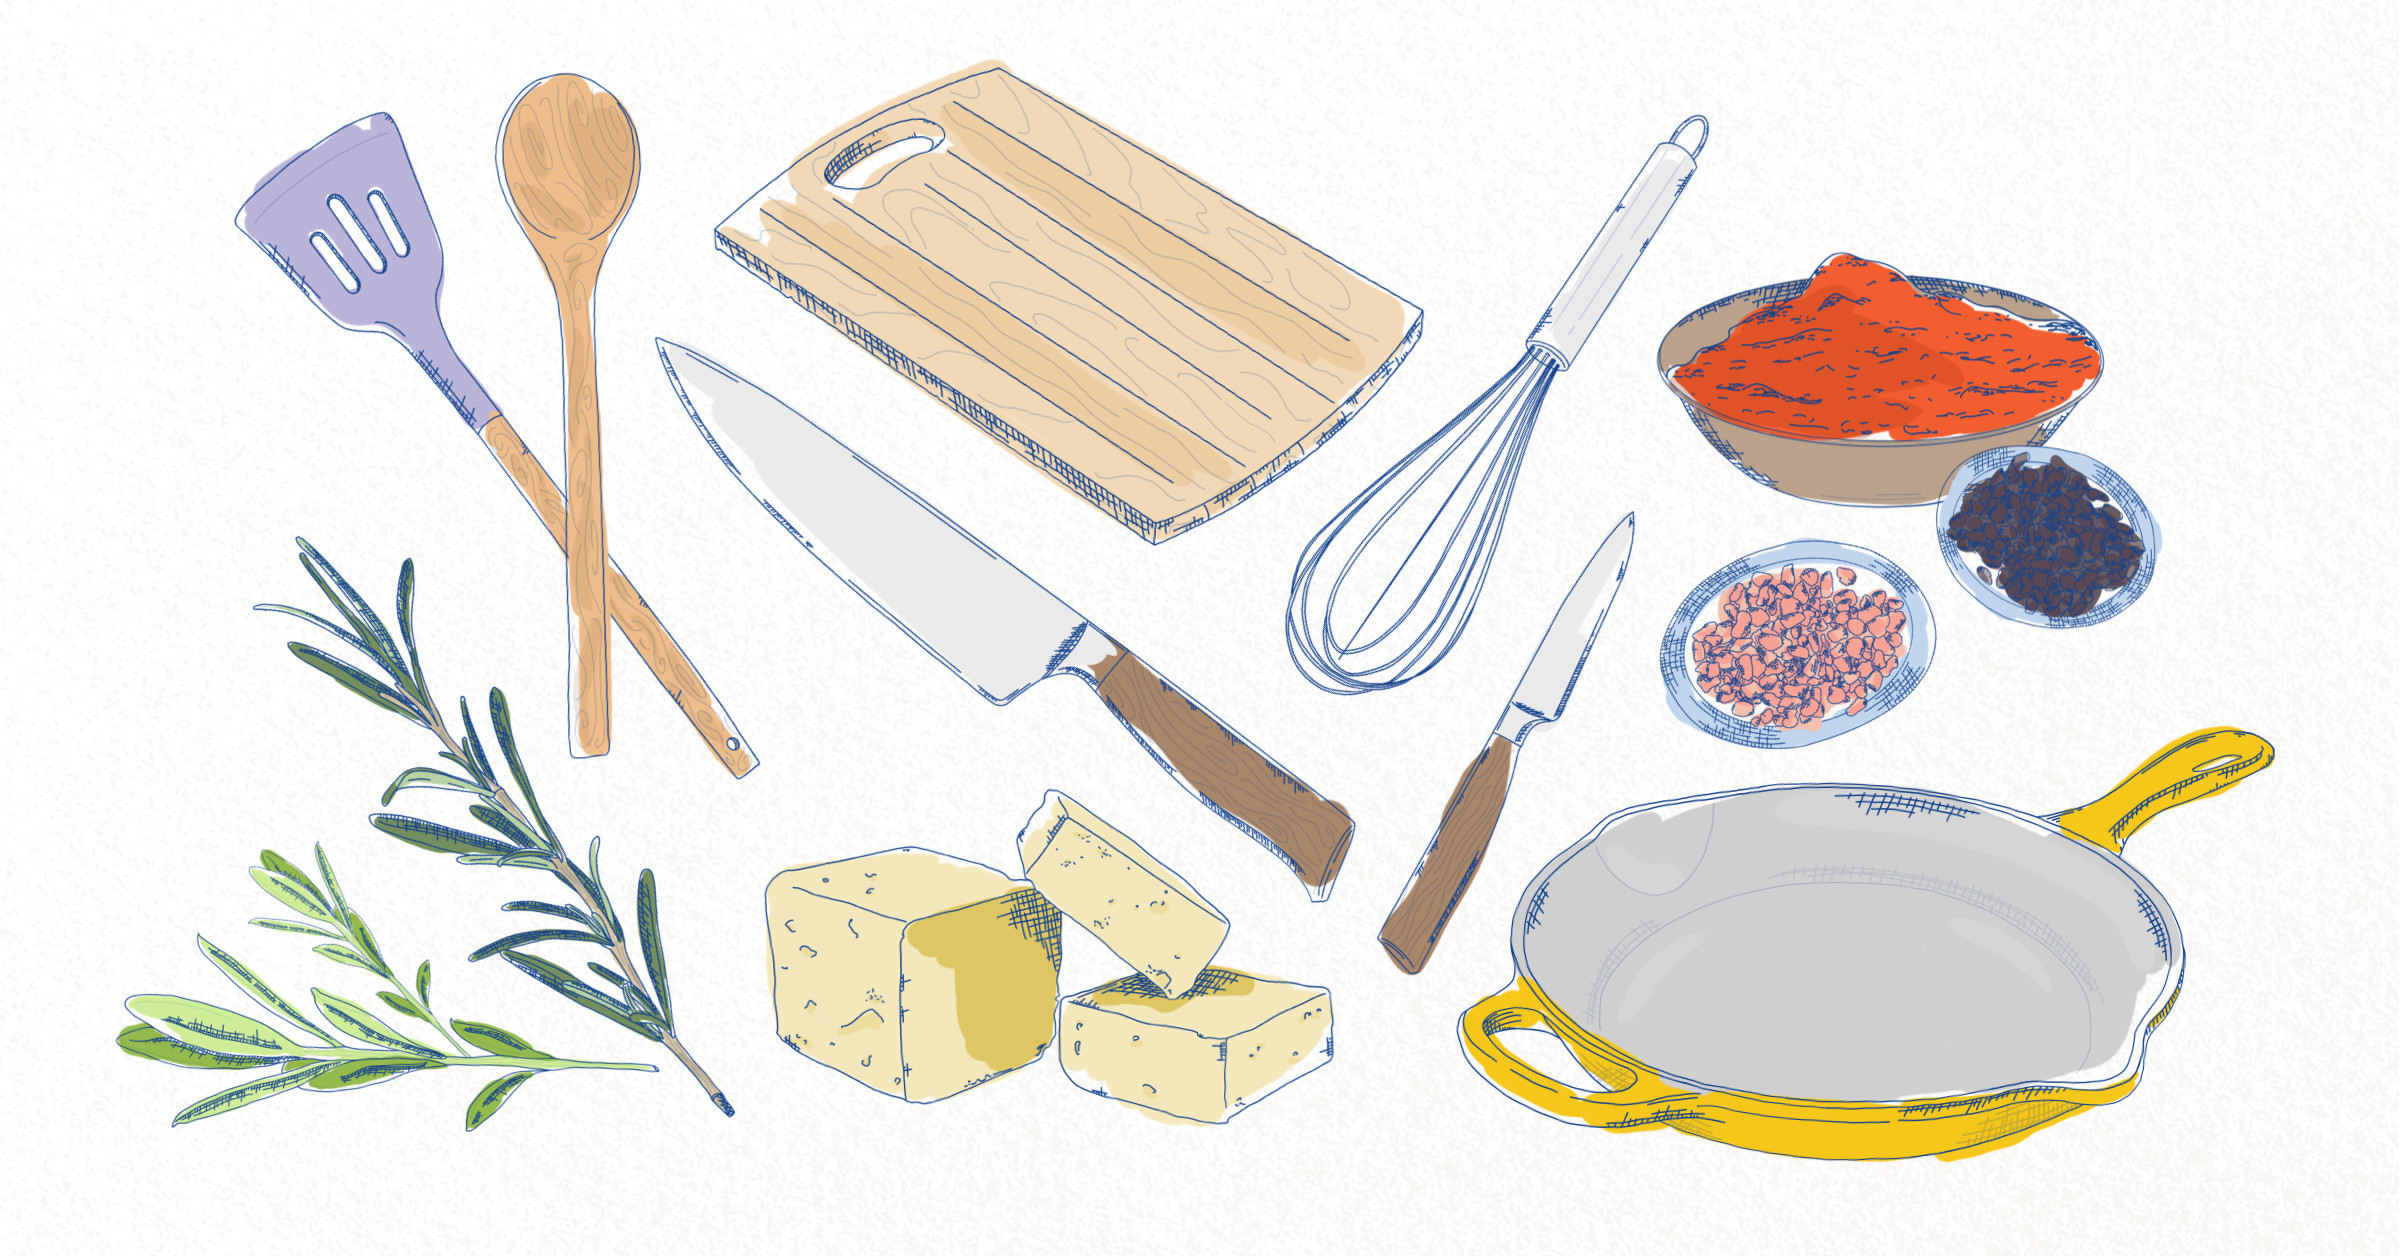 8 Must-Haves for Every Home Cook